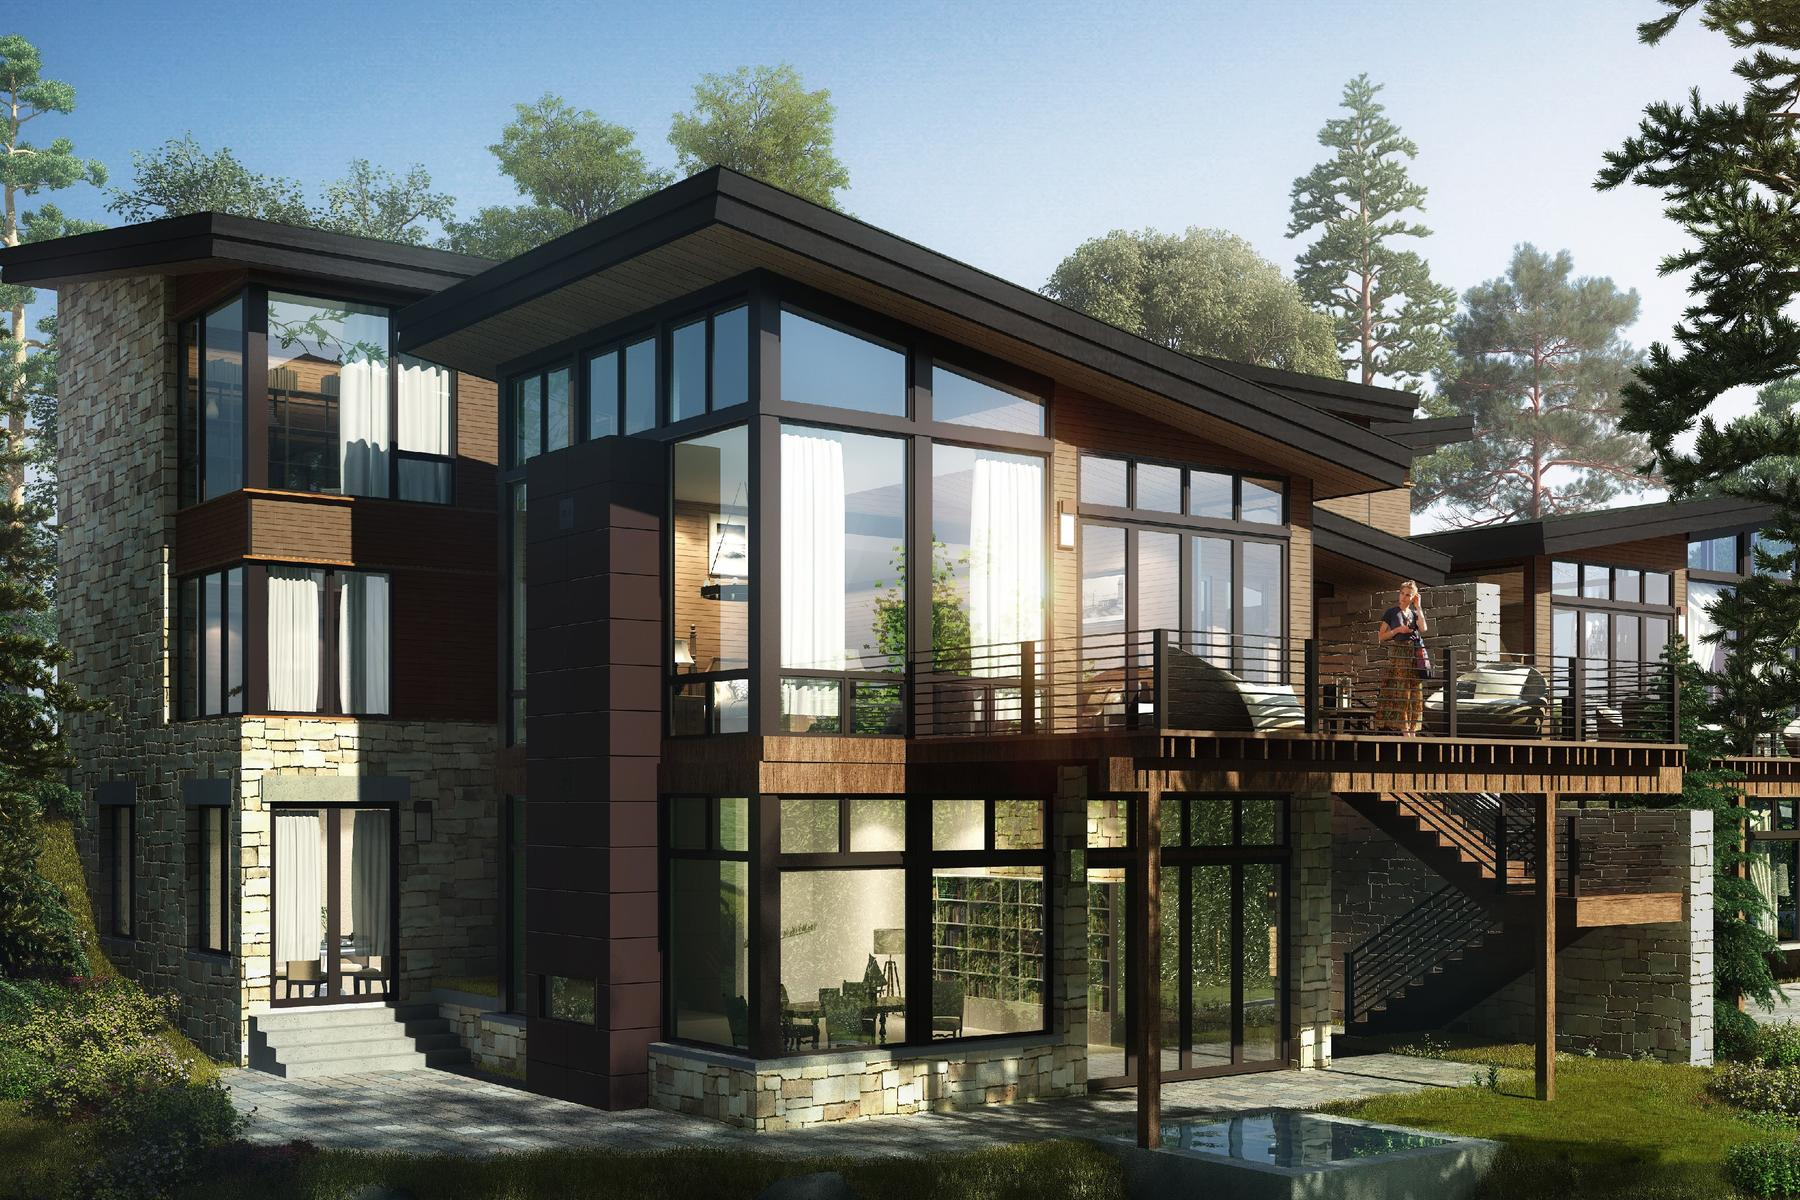 Property for Active at The future of East Vail architecture and design has arrived! 4273 Columbine Drive, #W Vail, Colorado 81657 United States